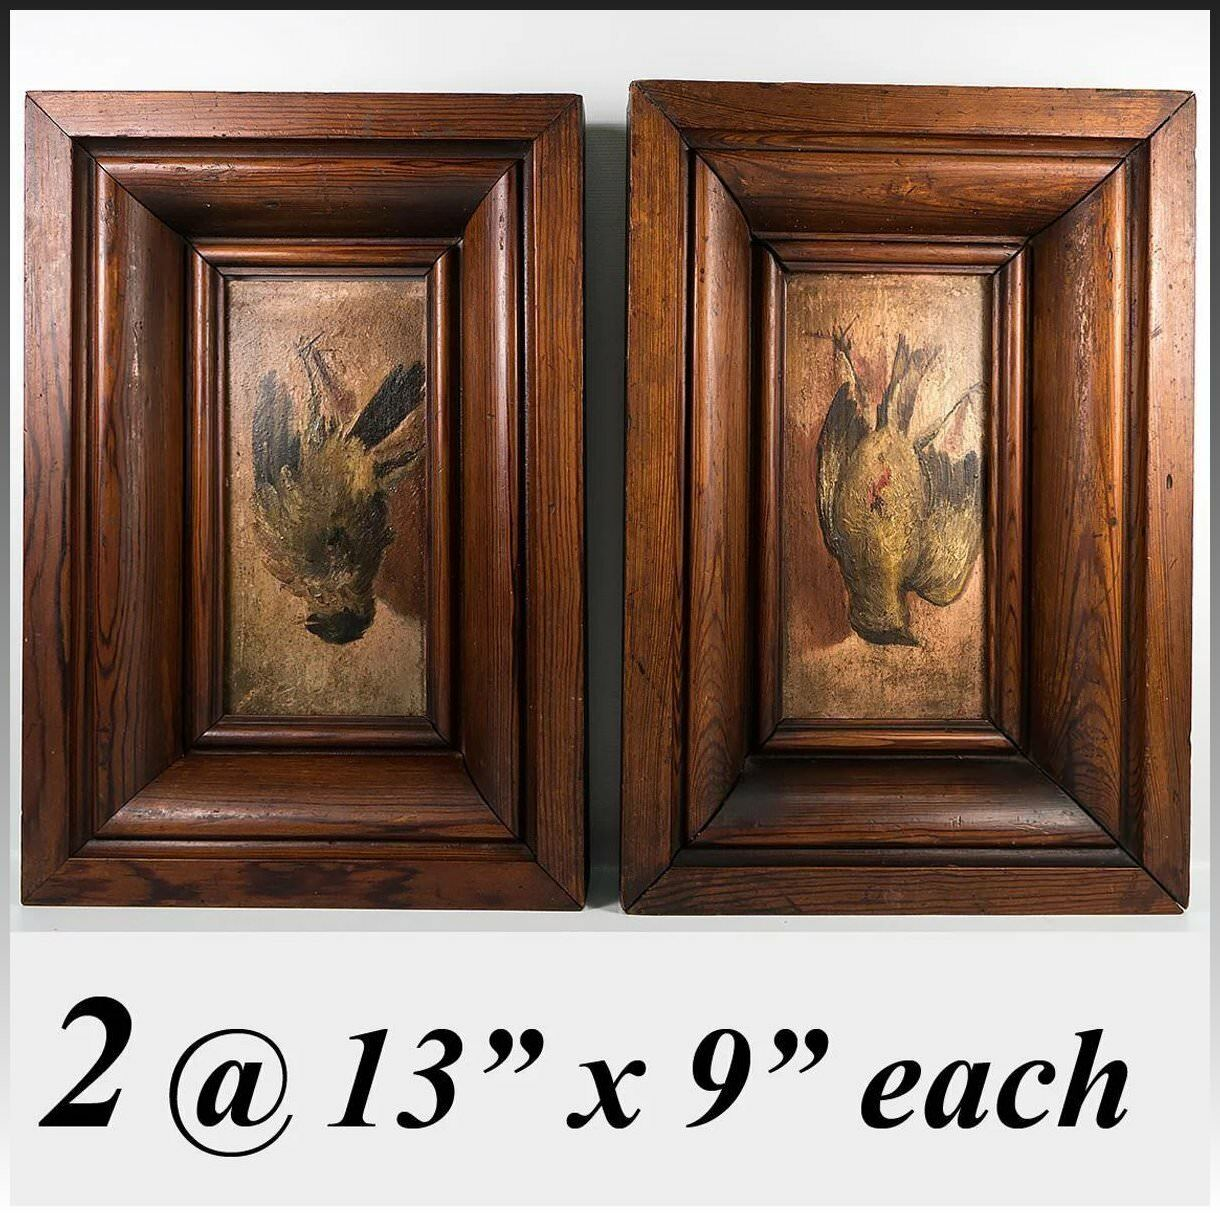 Pair: 2 Antique Oil Paintings on Wood Board, in Frame, Trompe l'Oeil Birds